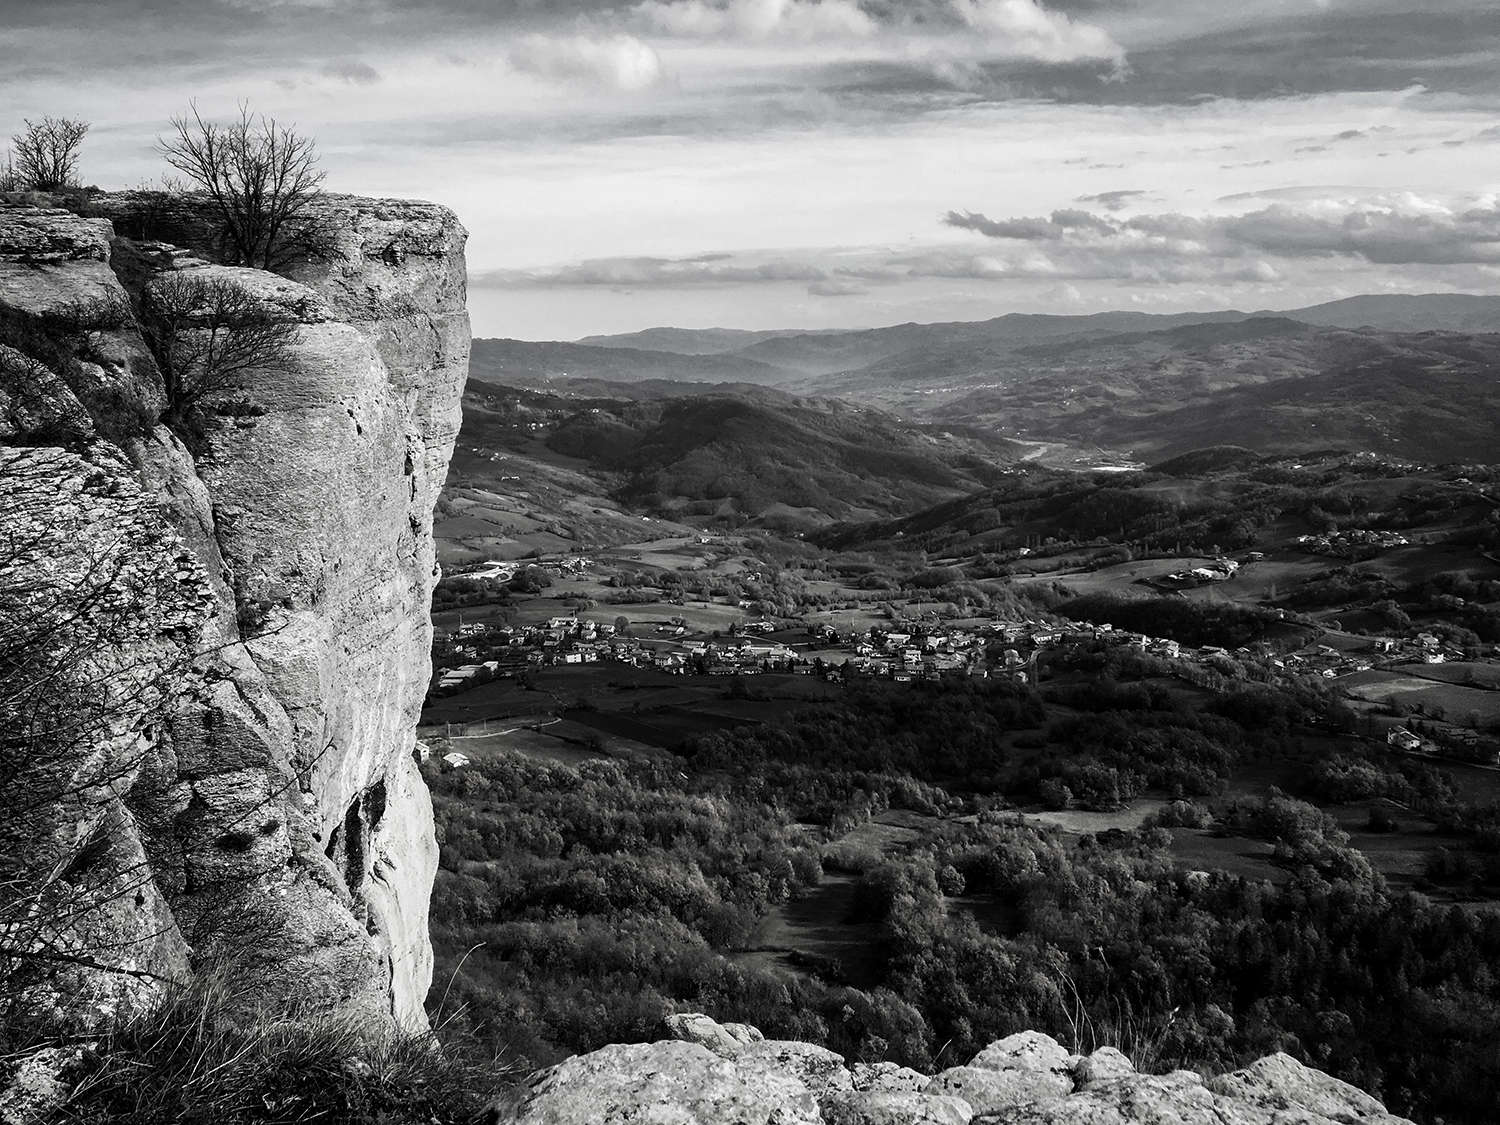 Pietra di Bismantova is a rock formation in the Apennines of Reggio Emilia, popular with technical rock climbers and hikers.